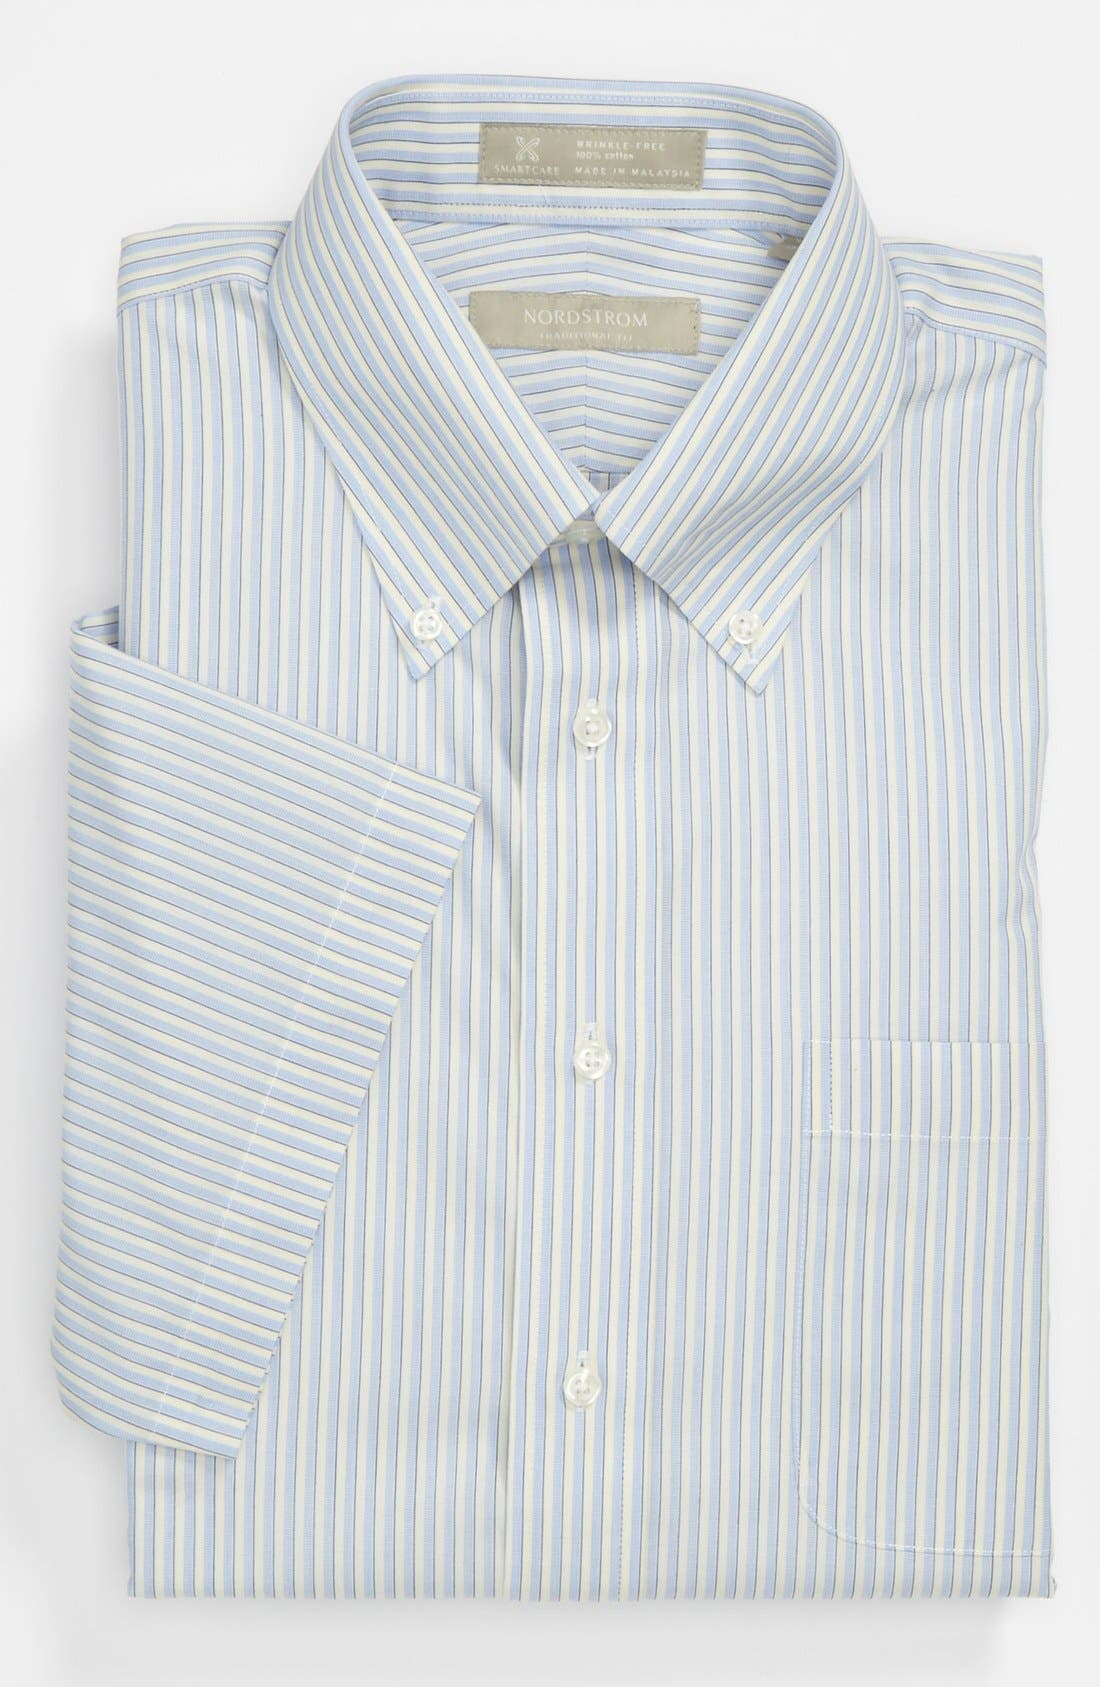 Alternate Image 1 Selected - Nordstrom Smartcare™ Wrinkle Free Traditional Fit Short Sleeve Dress Shirt (Online Only)